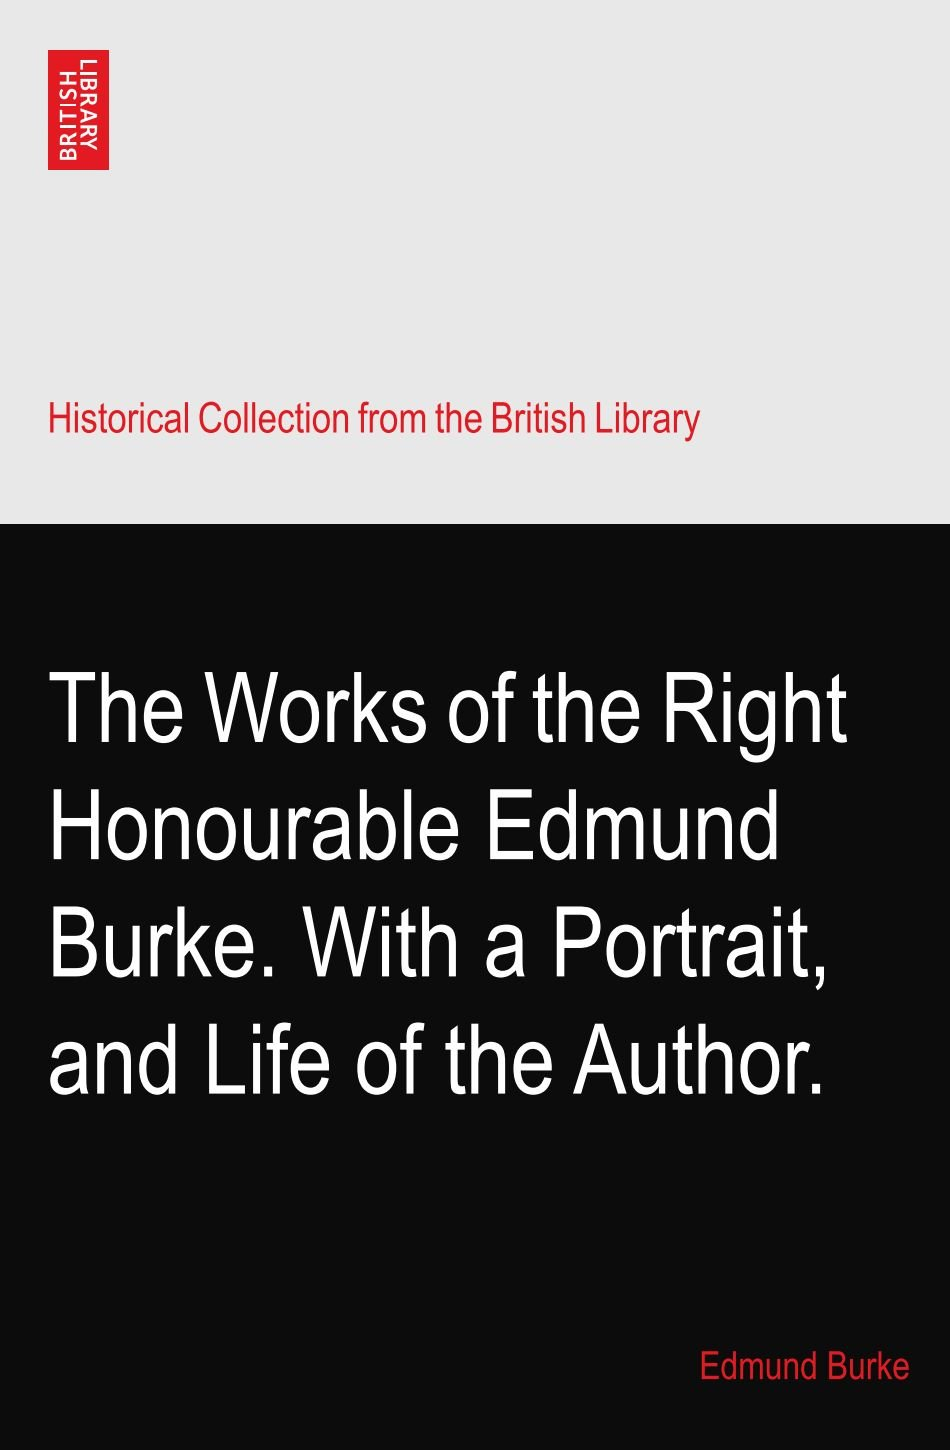 Download The Works of the Right Honourable Edmund Burke. With a Portrait, and Life of the Author. ebook